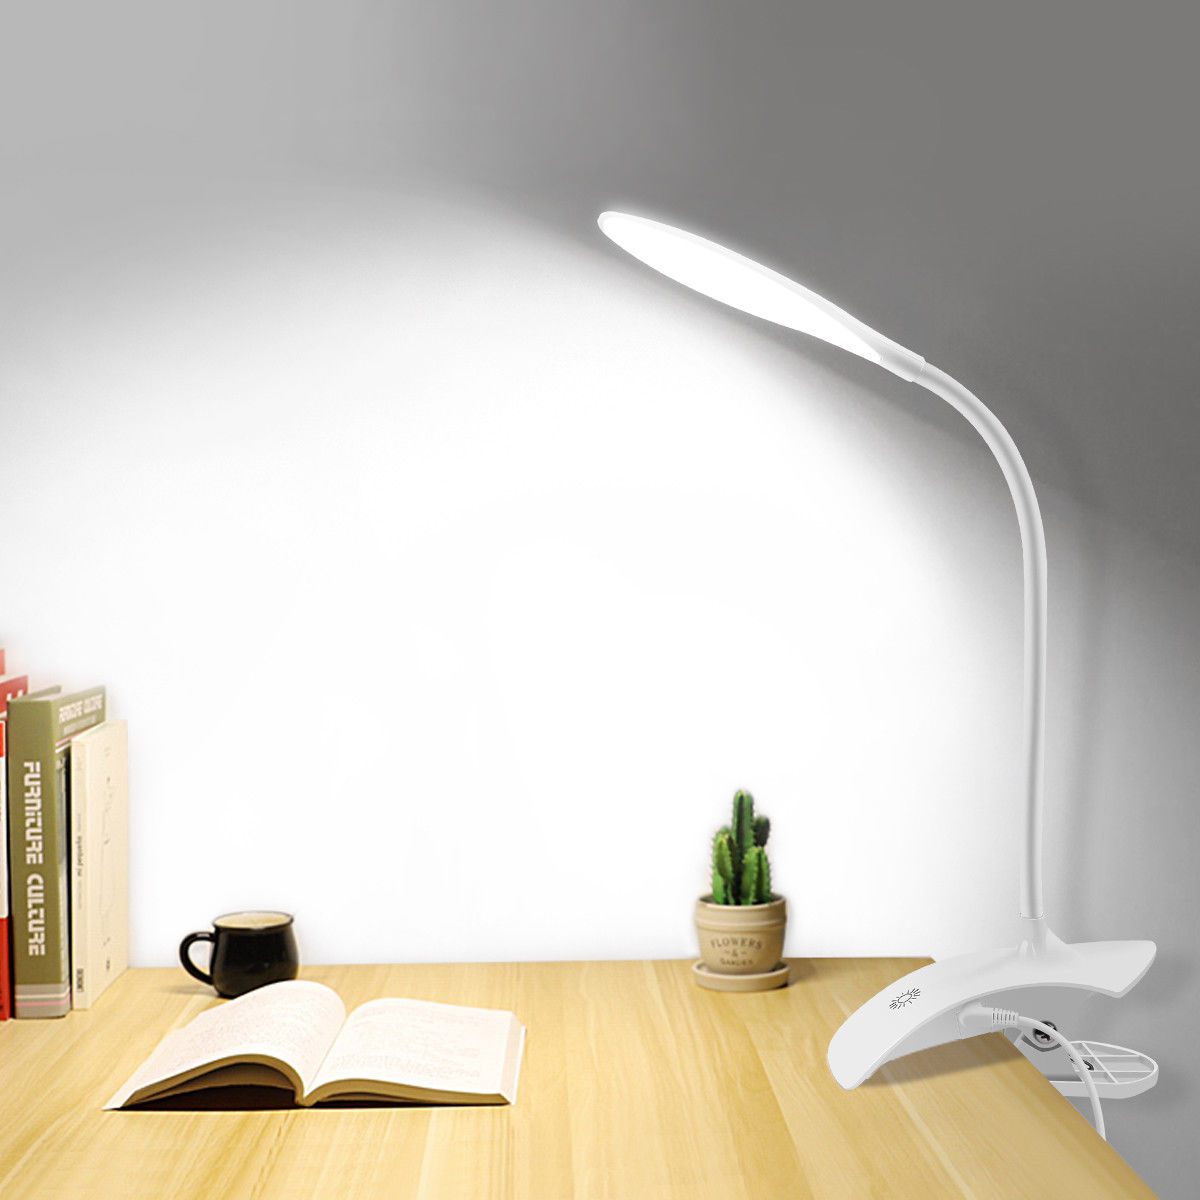 Details About Usb Clip On Table Desk Bed Piano Reading Light Lamp Cold White Led Flexible Rk71